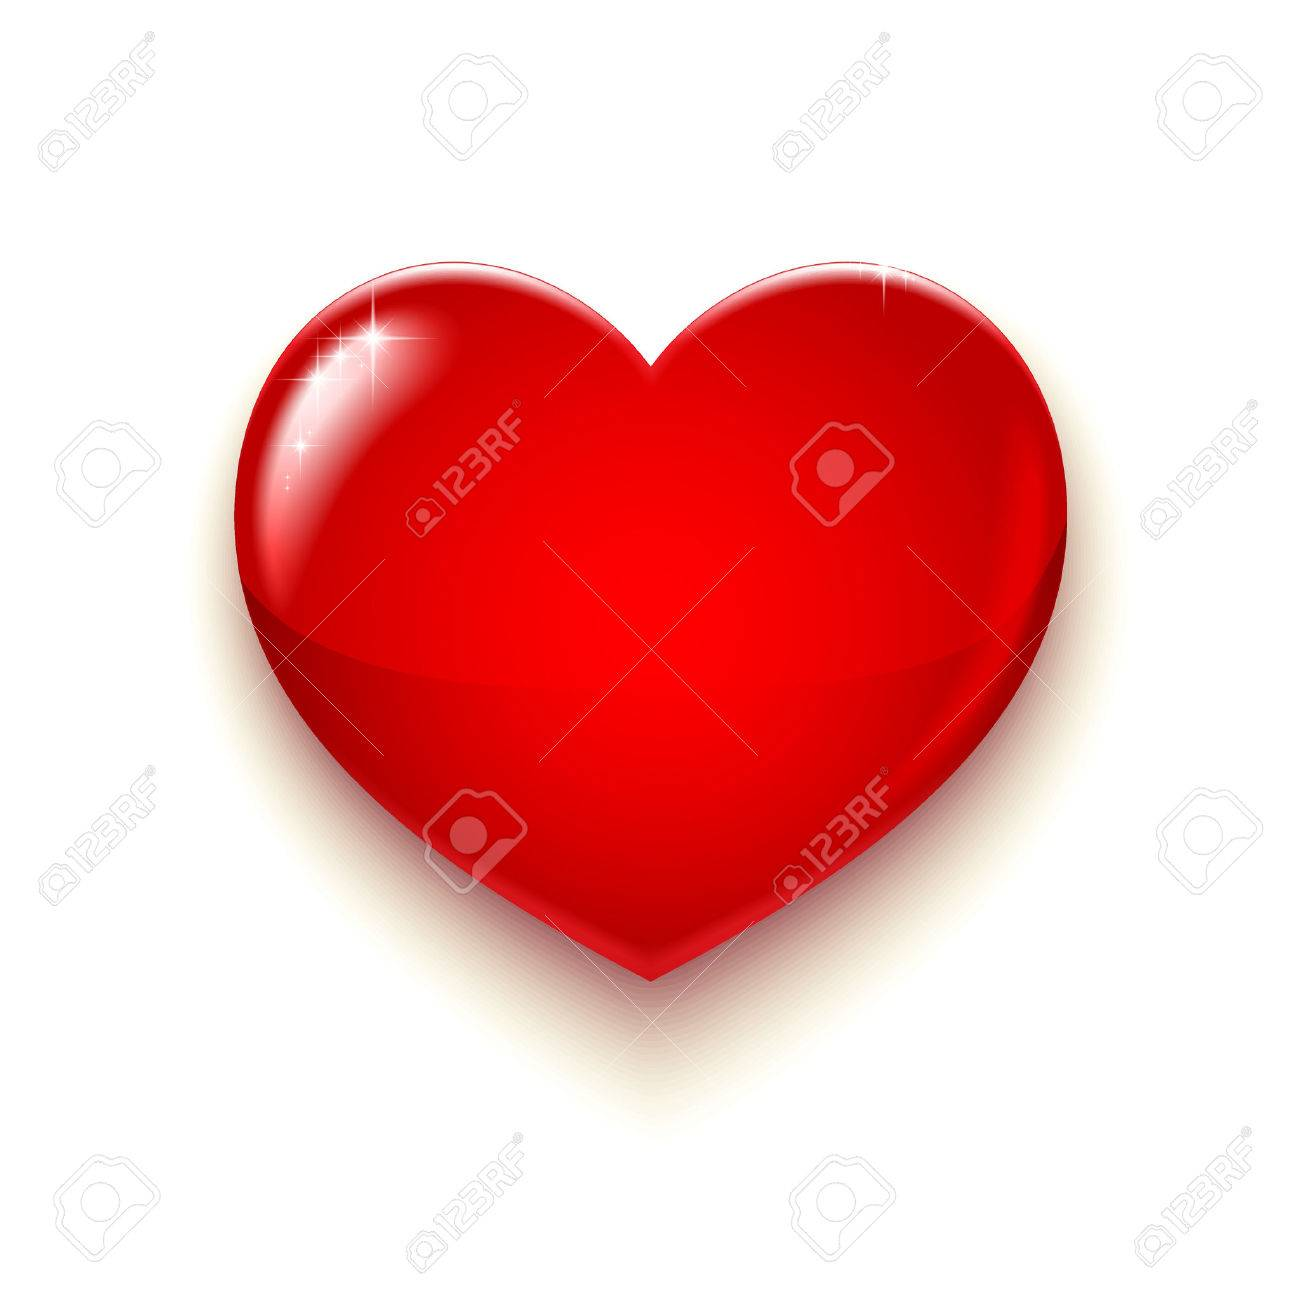 Big Red Heart for Valentines day and more, Vector Illustration - 48011149